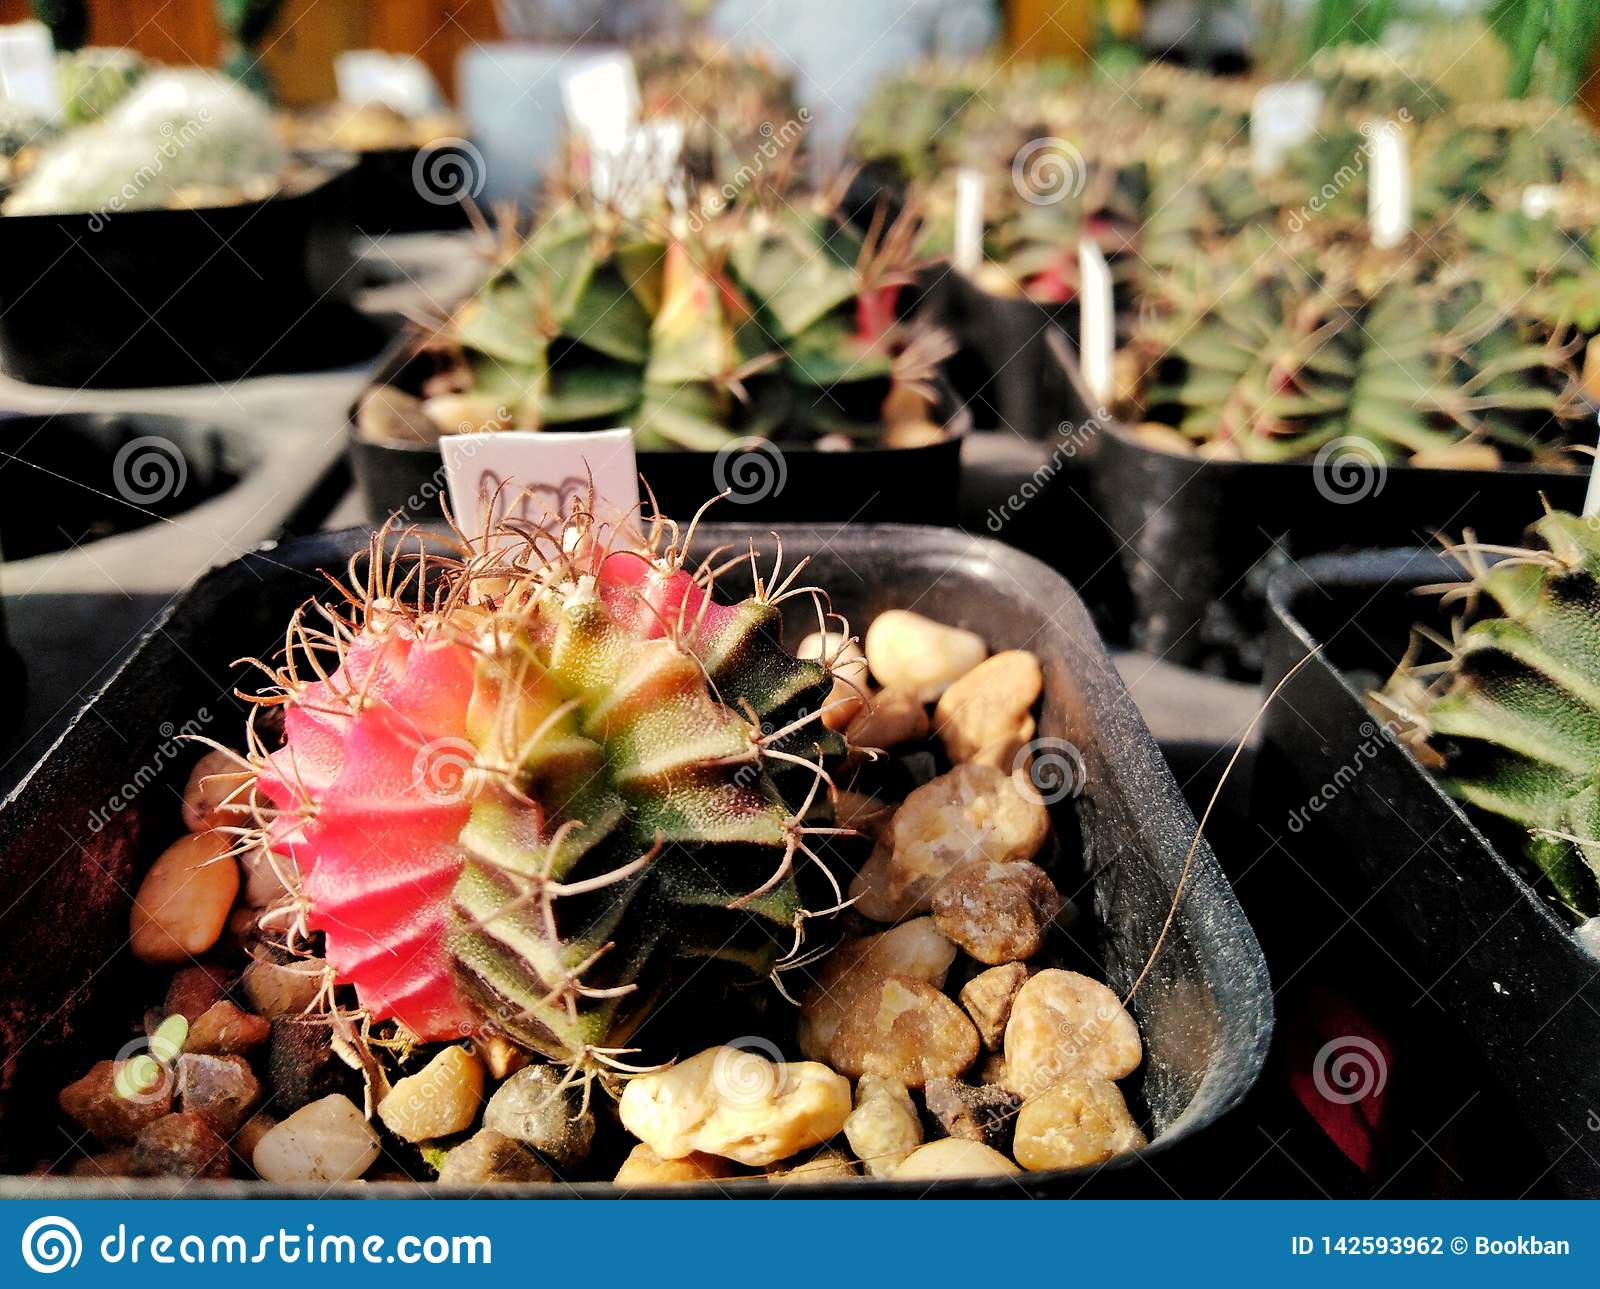 Beautiful cactus In stone pots Price tag is 200 baht.